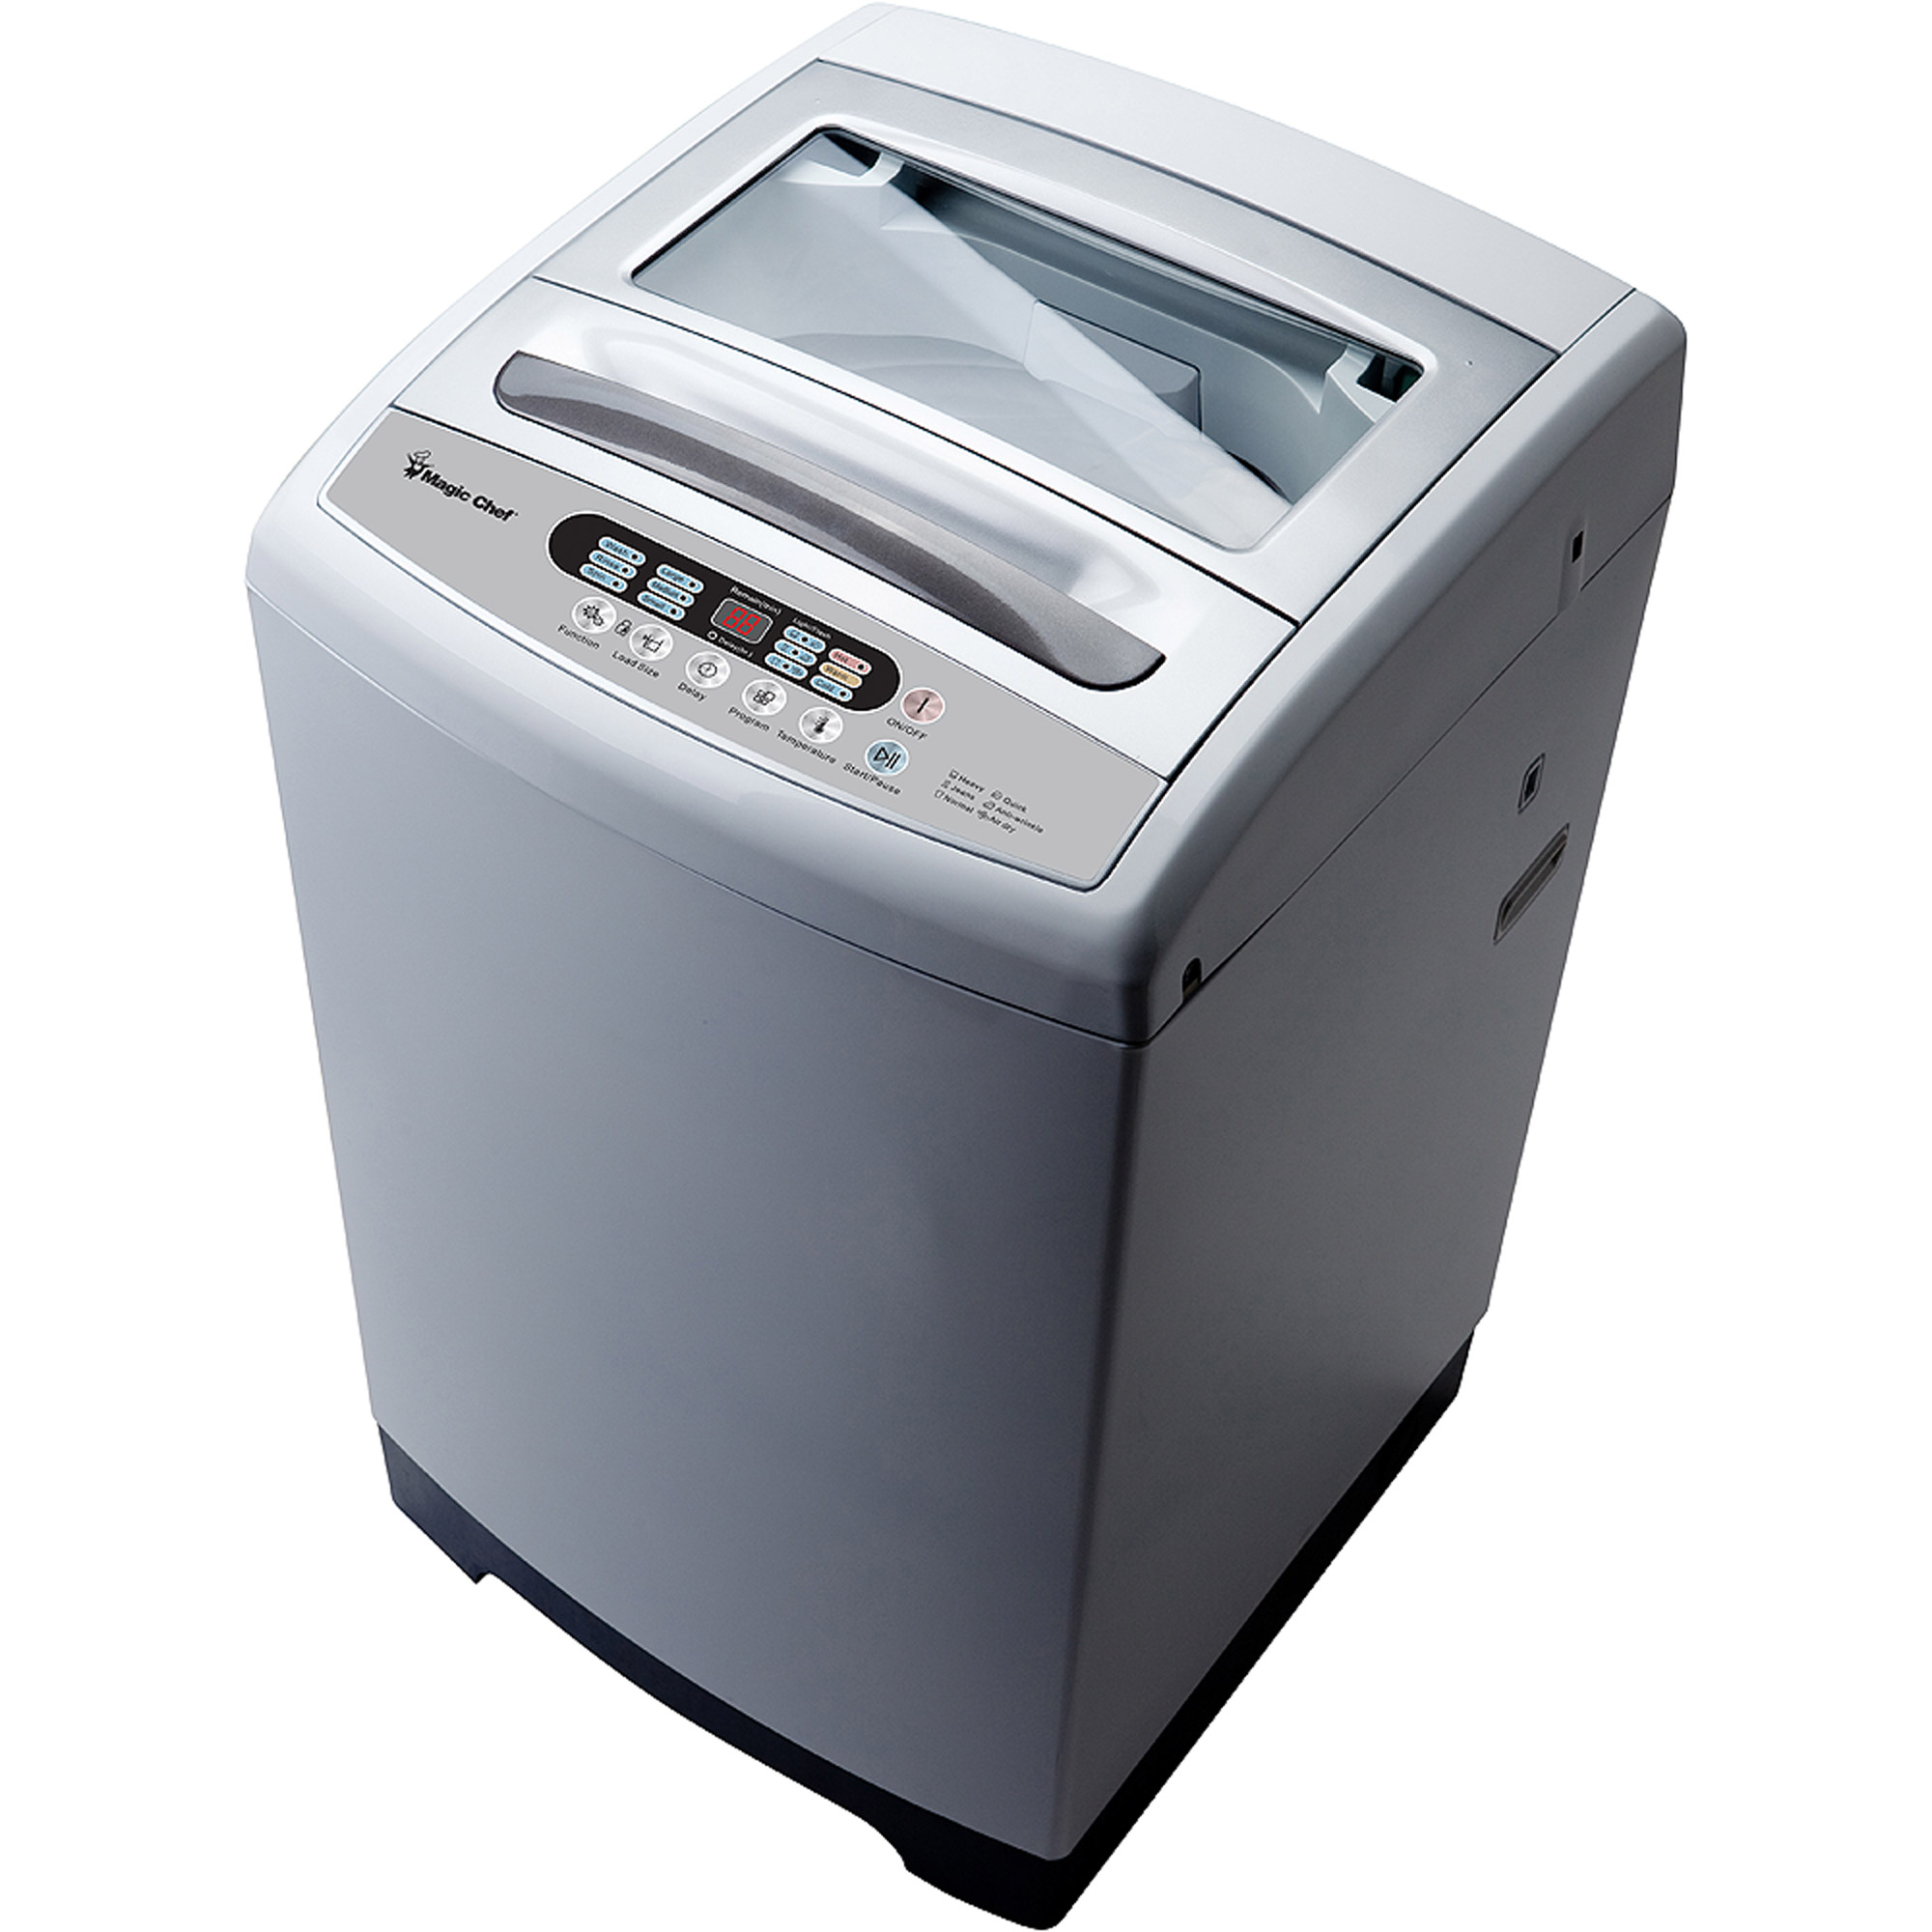 Magic Chef 2.1 cu. ft. Top Load Portable Washer